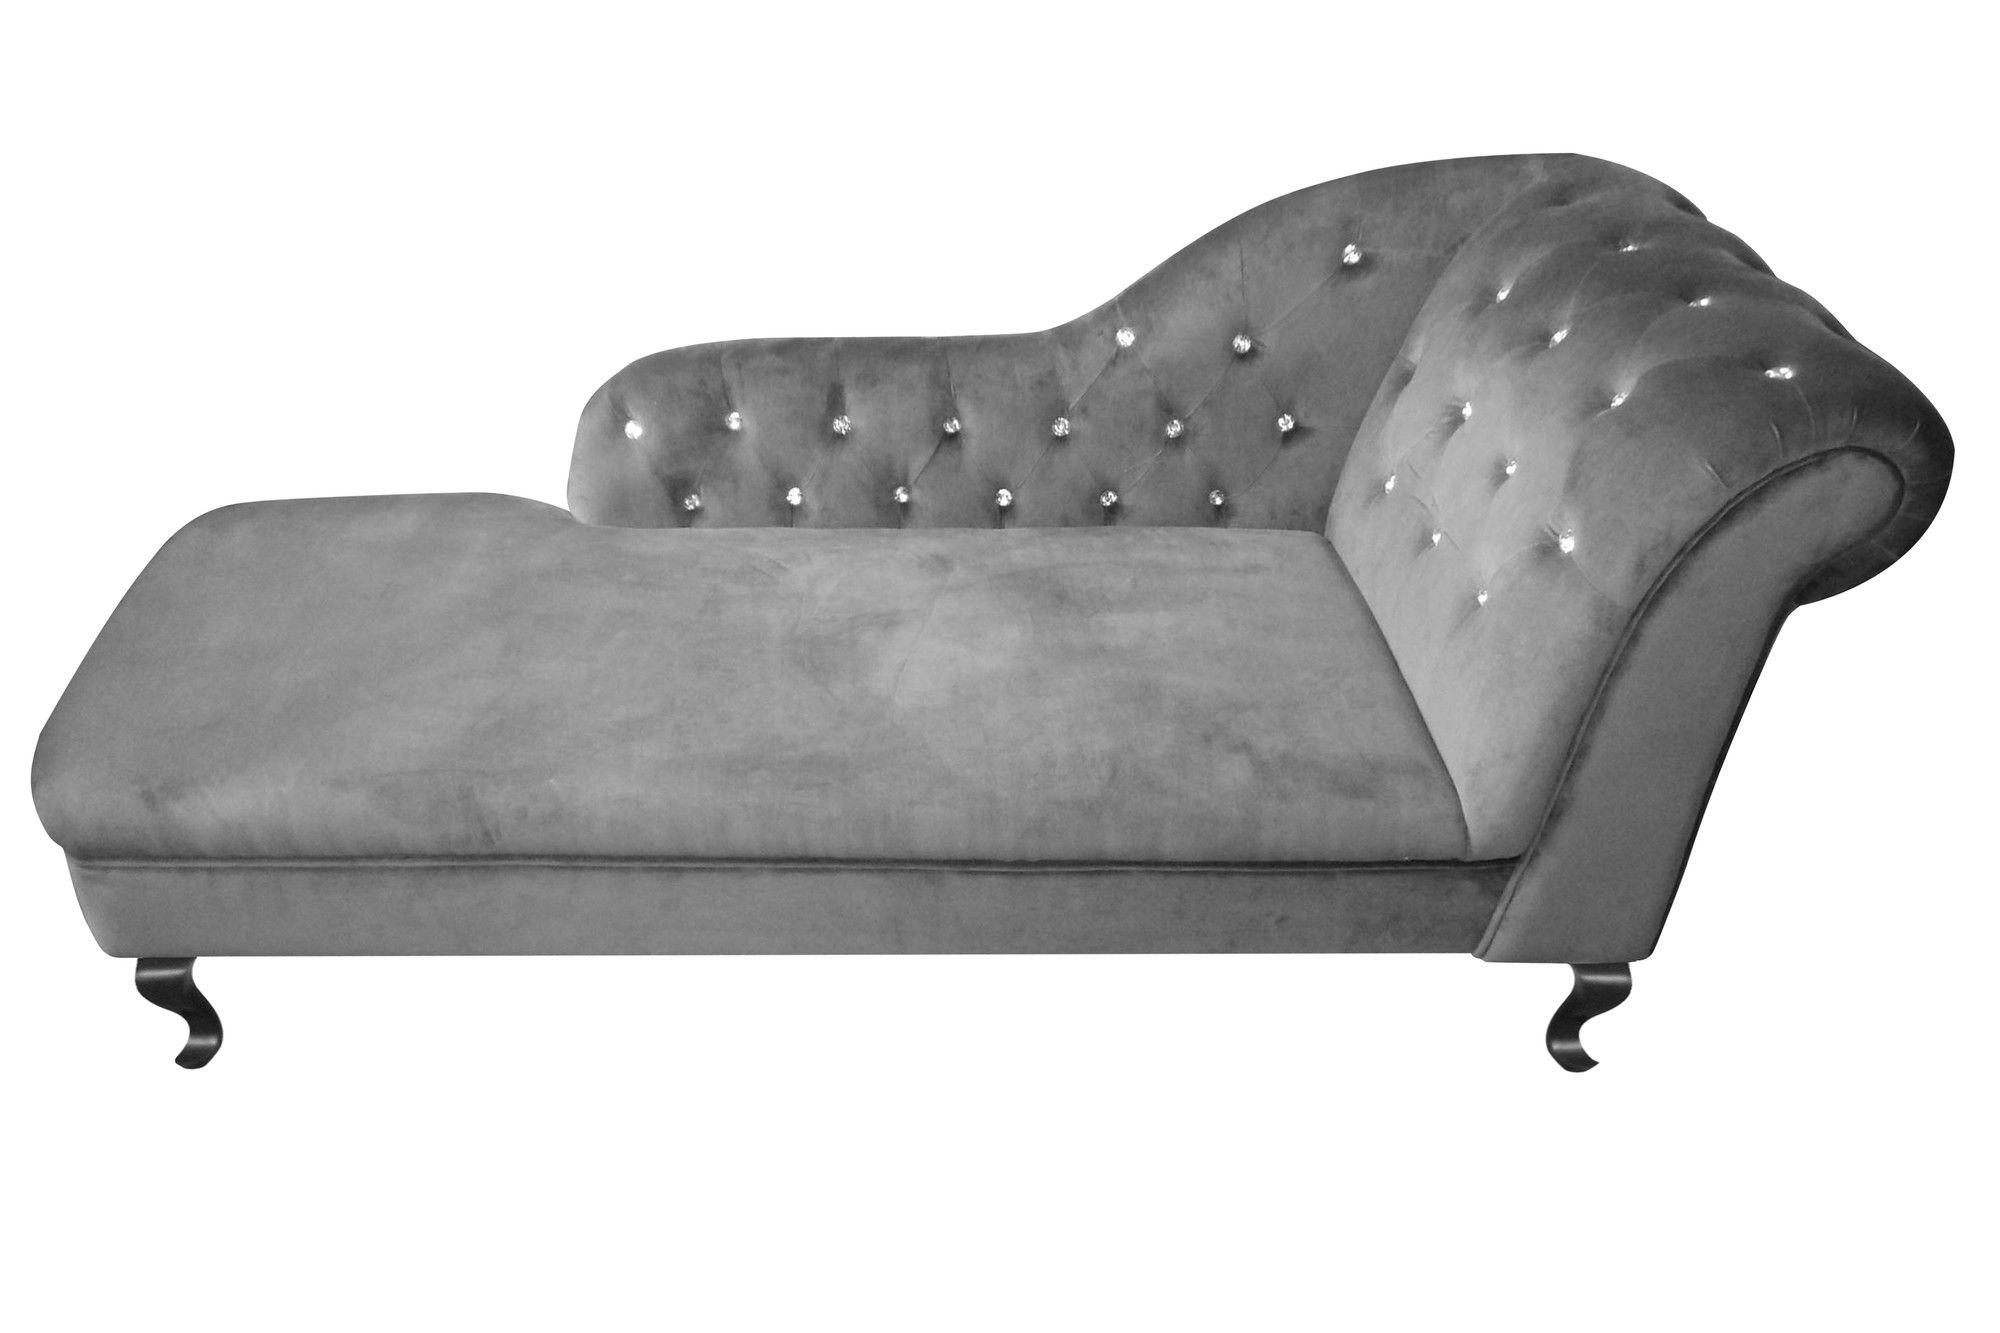 Diamante Chaise Lounge with Right Armrest Wayfair UK